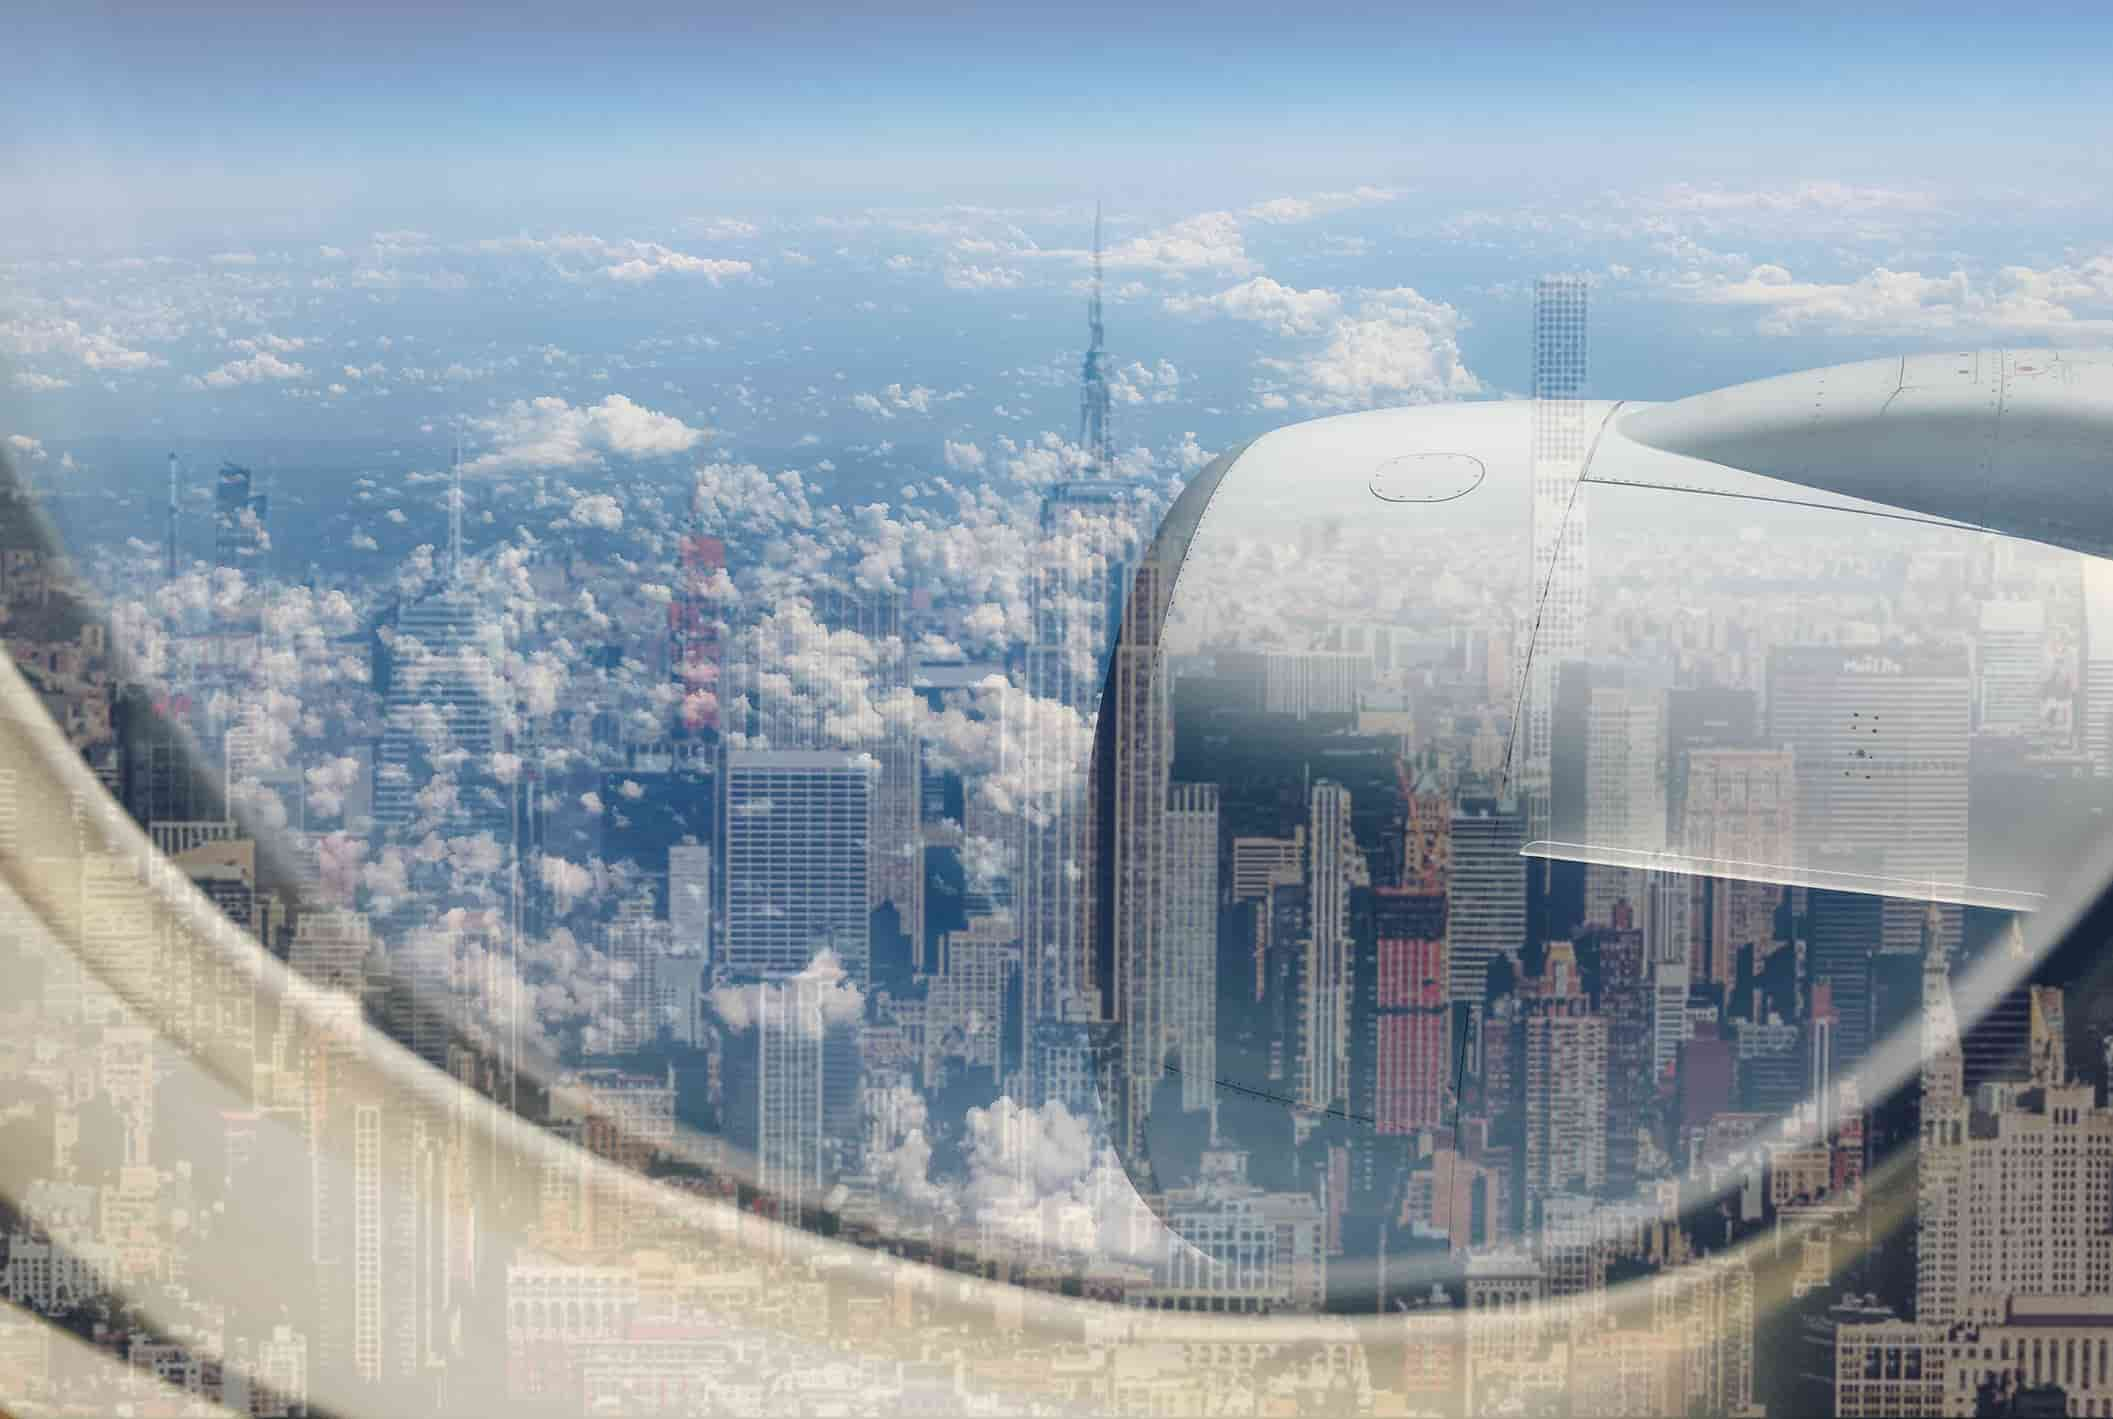 overview of New York City from an airplane